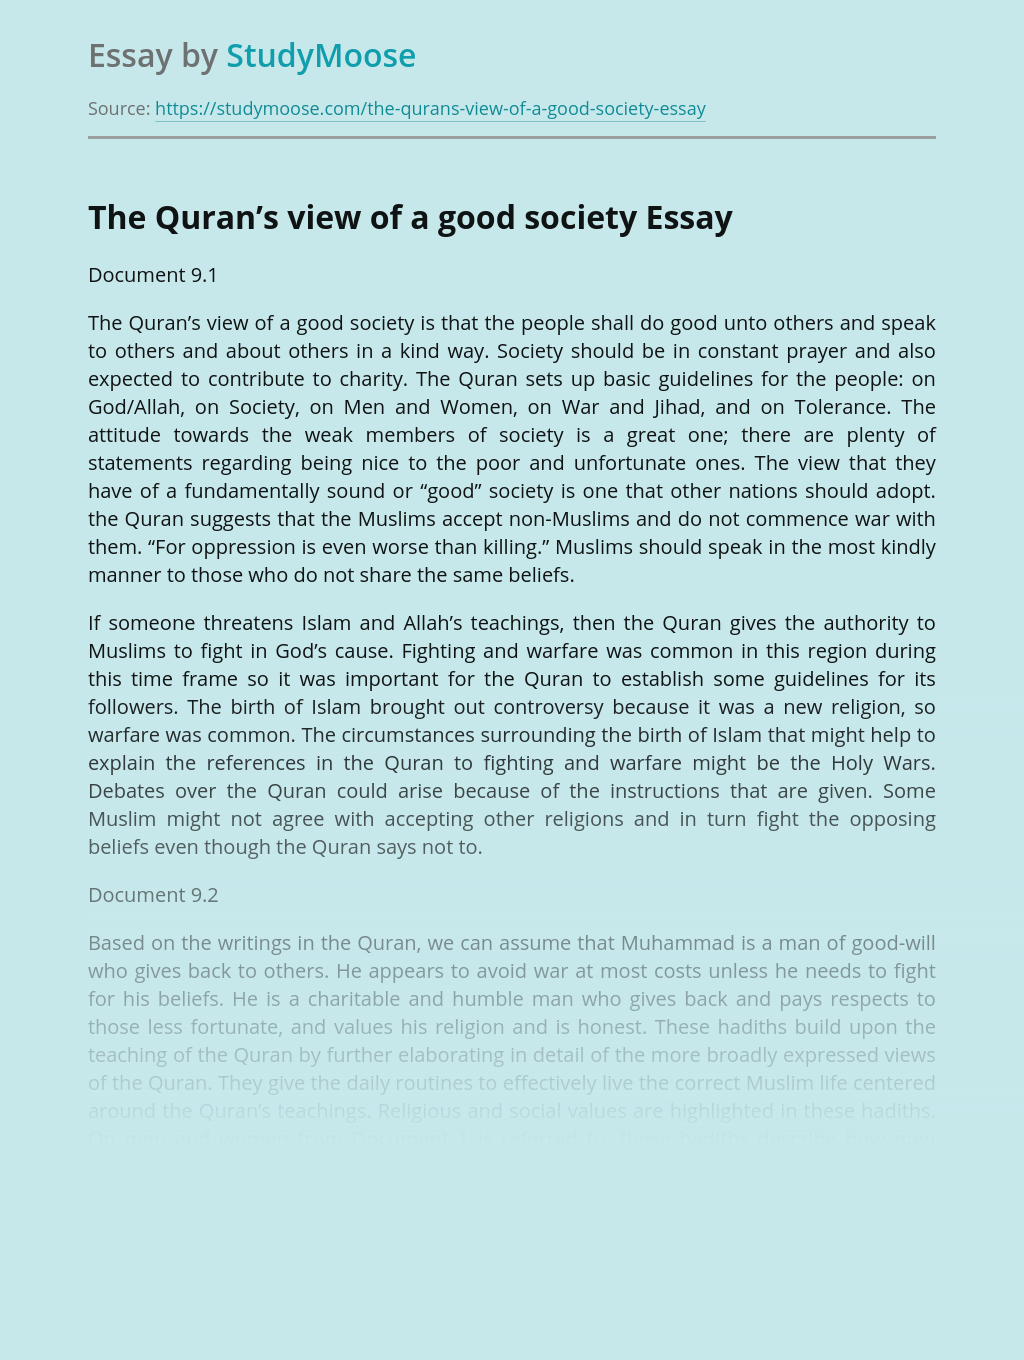 The Quran's view of a good society